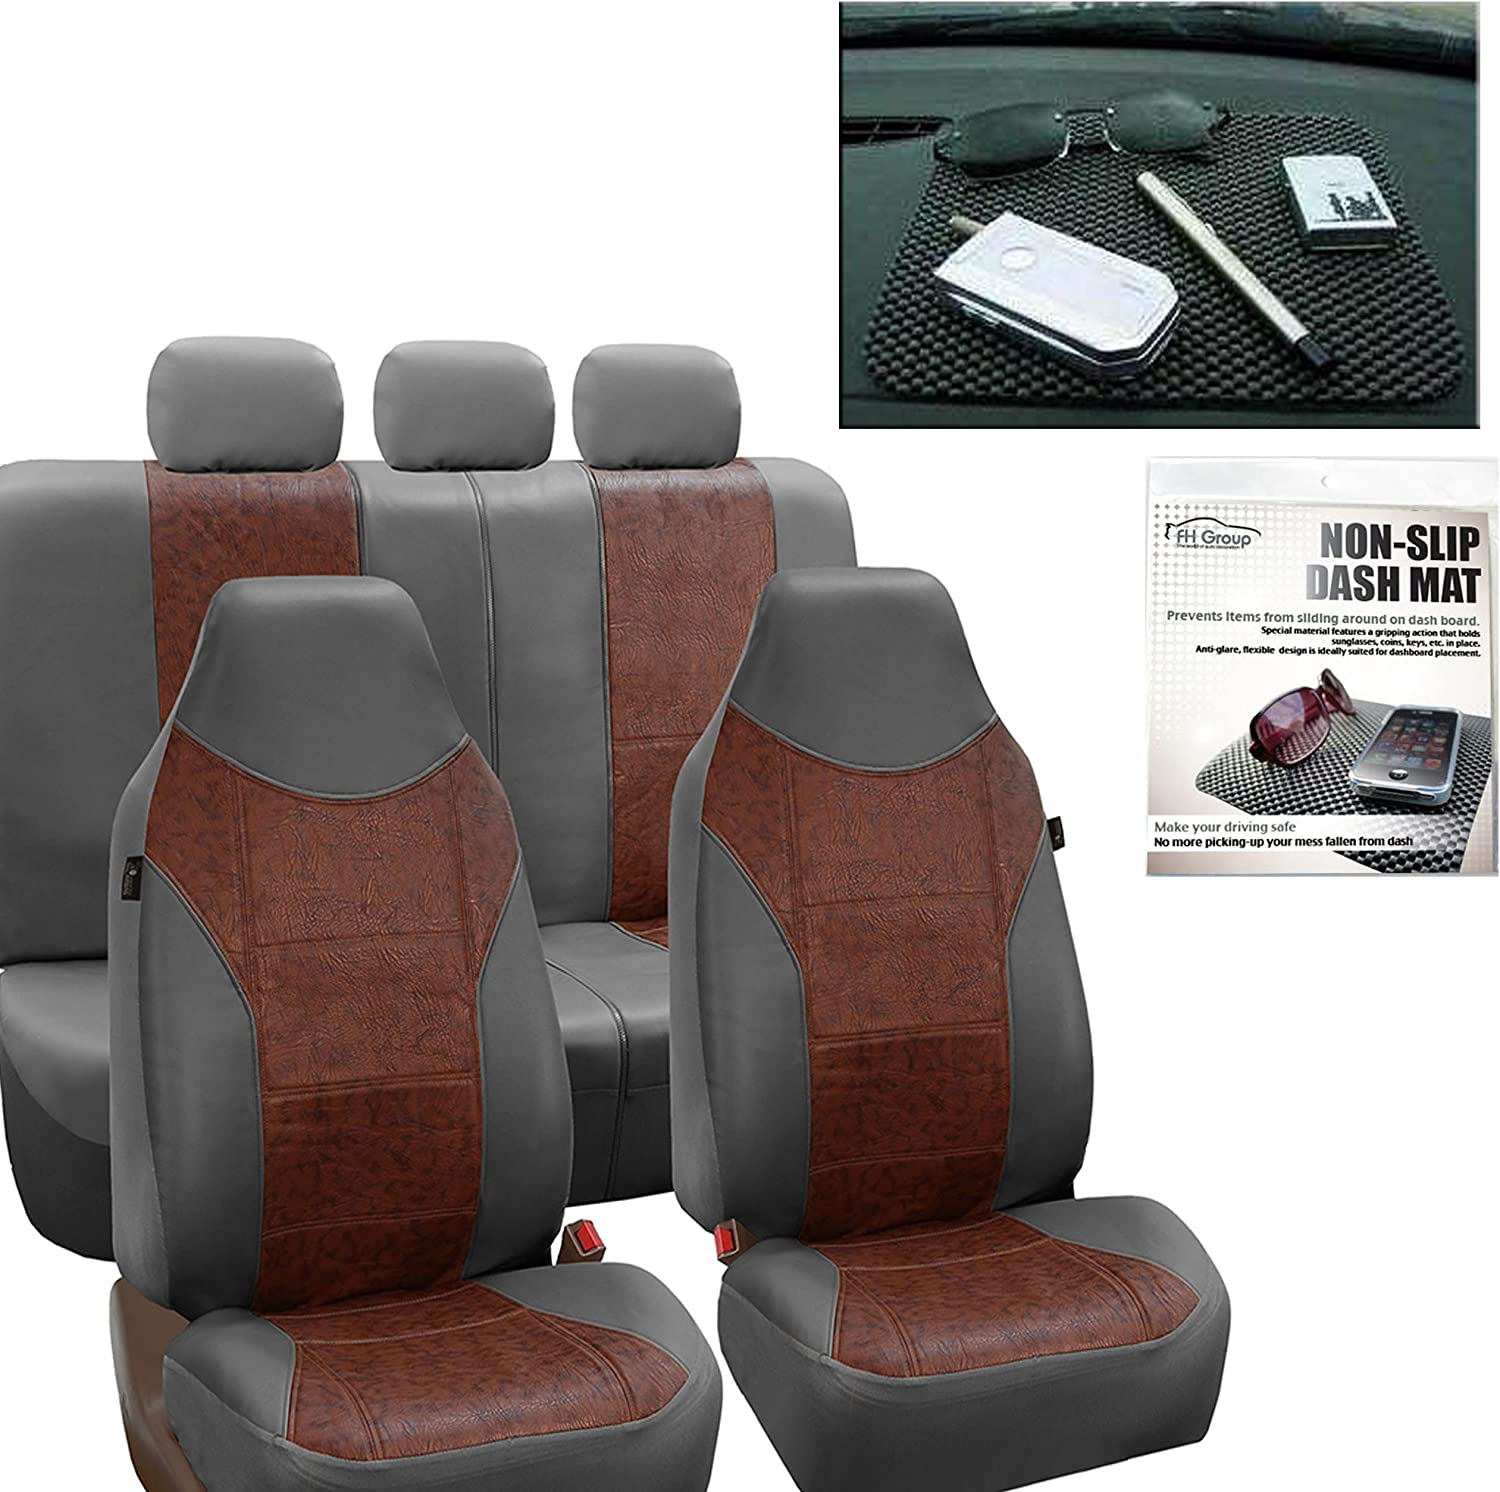 FH Group FH-PU160115 PU Textured High Back Leather Car Seat Covers Solid Gray, Airbag Compatible and Split Bench FH1002 Non-Slip Dash Grip Pad- Fit Most Car, Truck, SUV, or Van